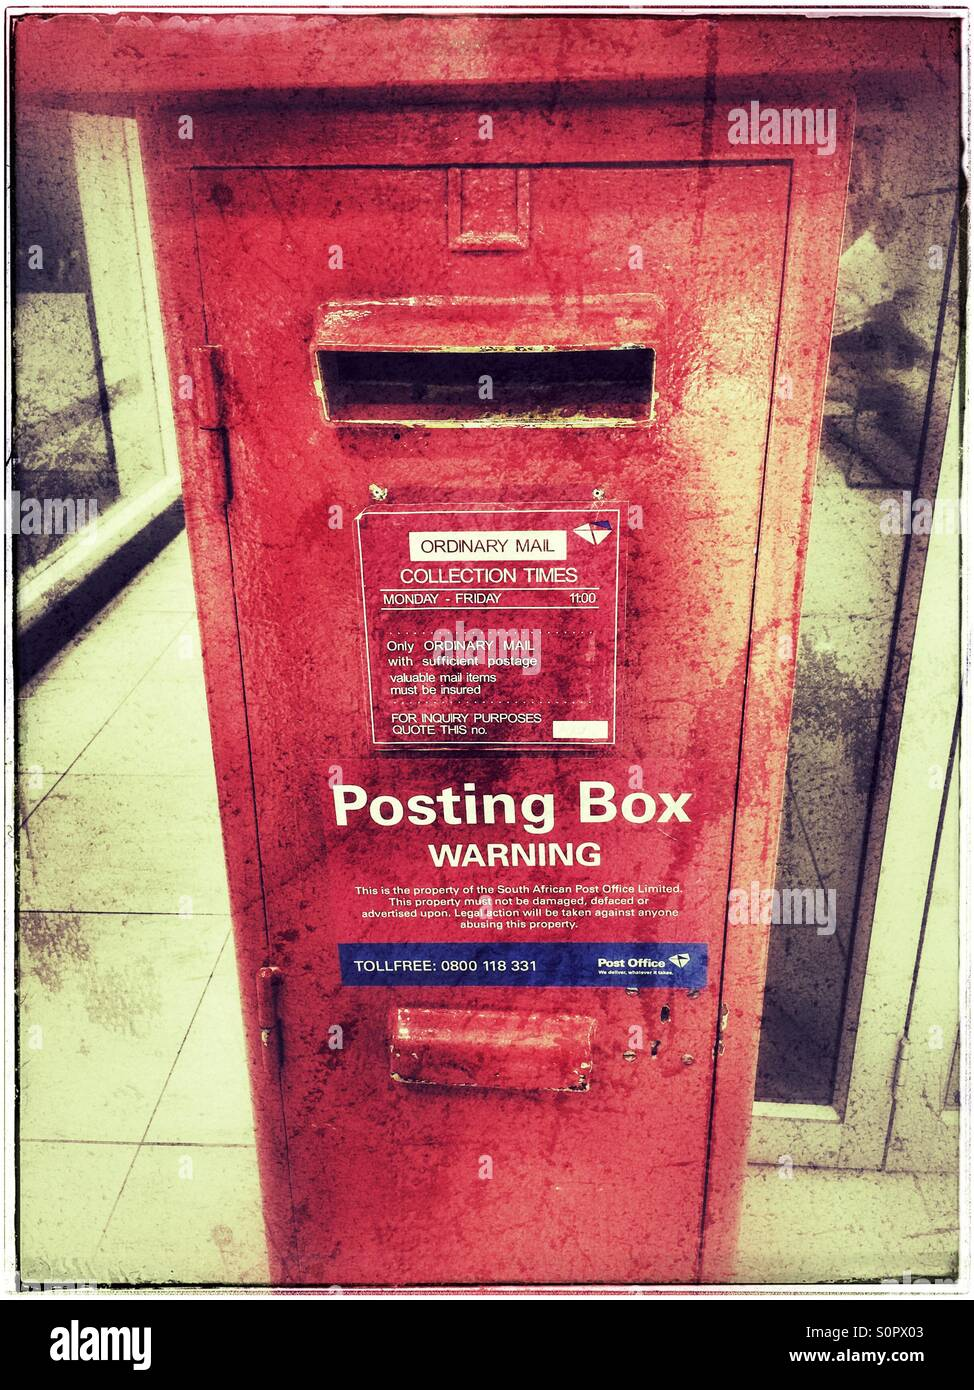 South African post box. - Stock Image